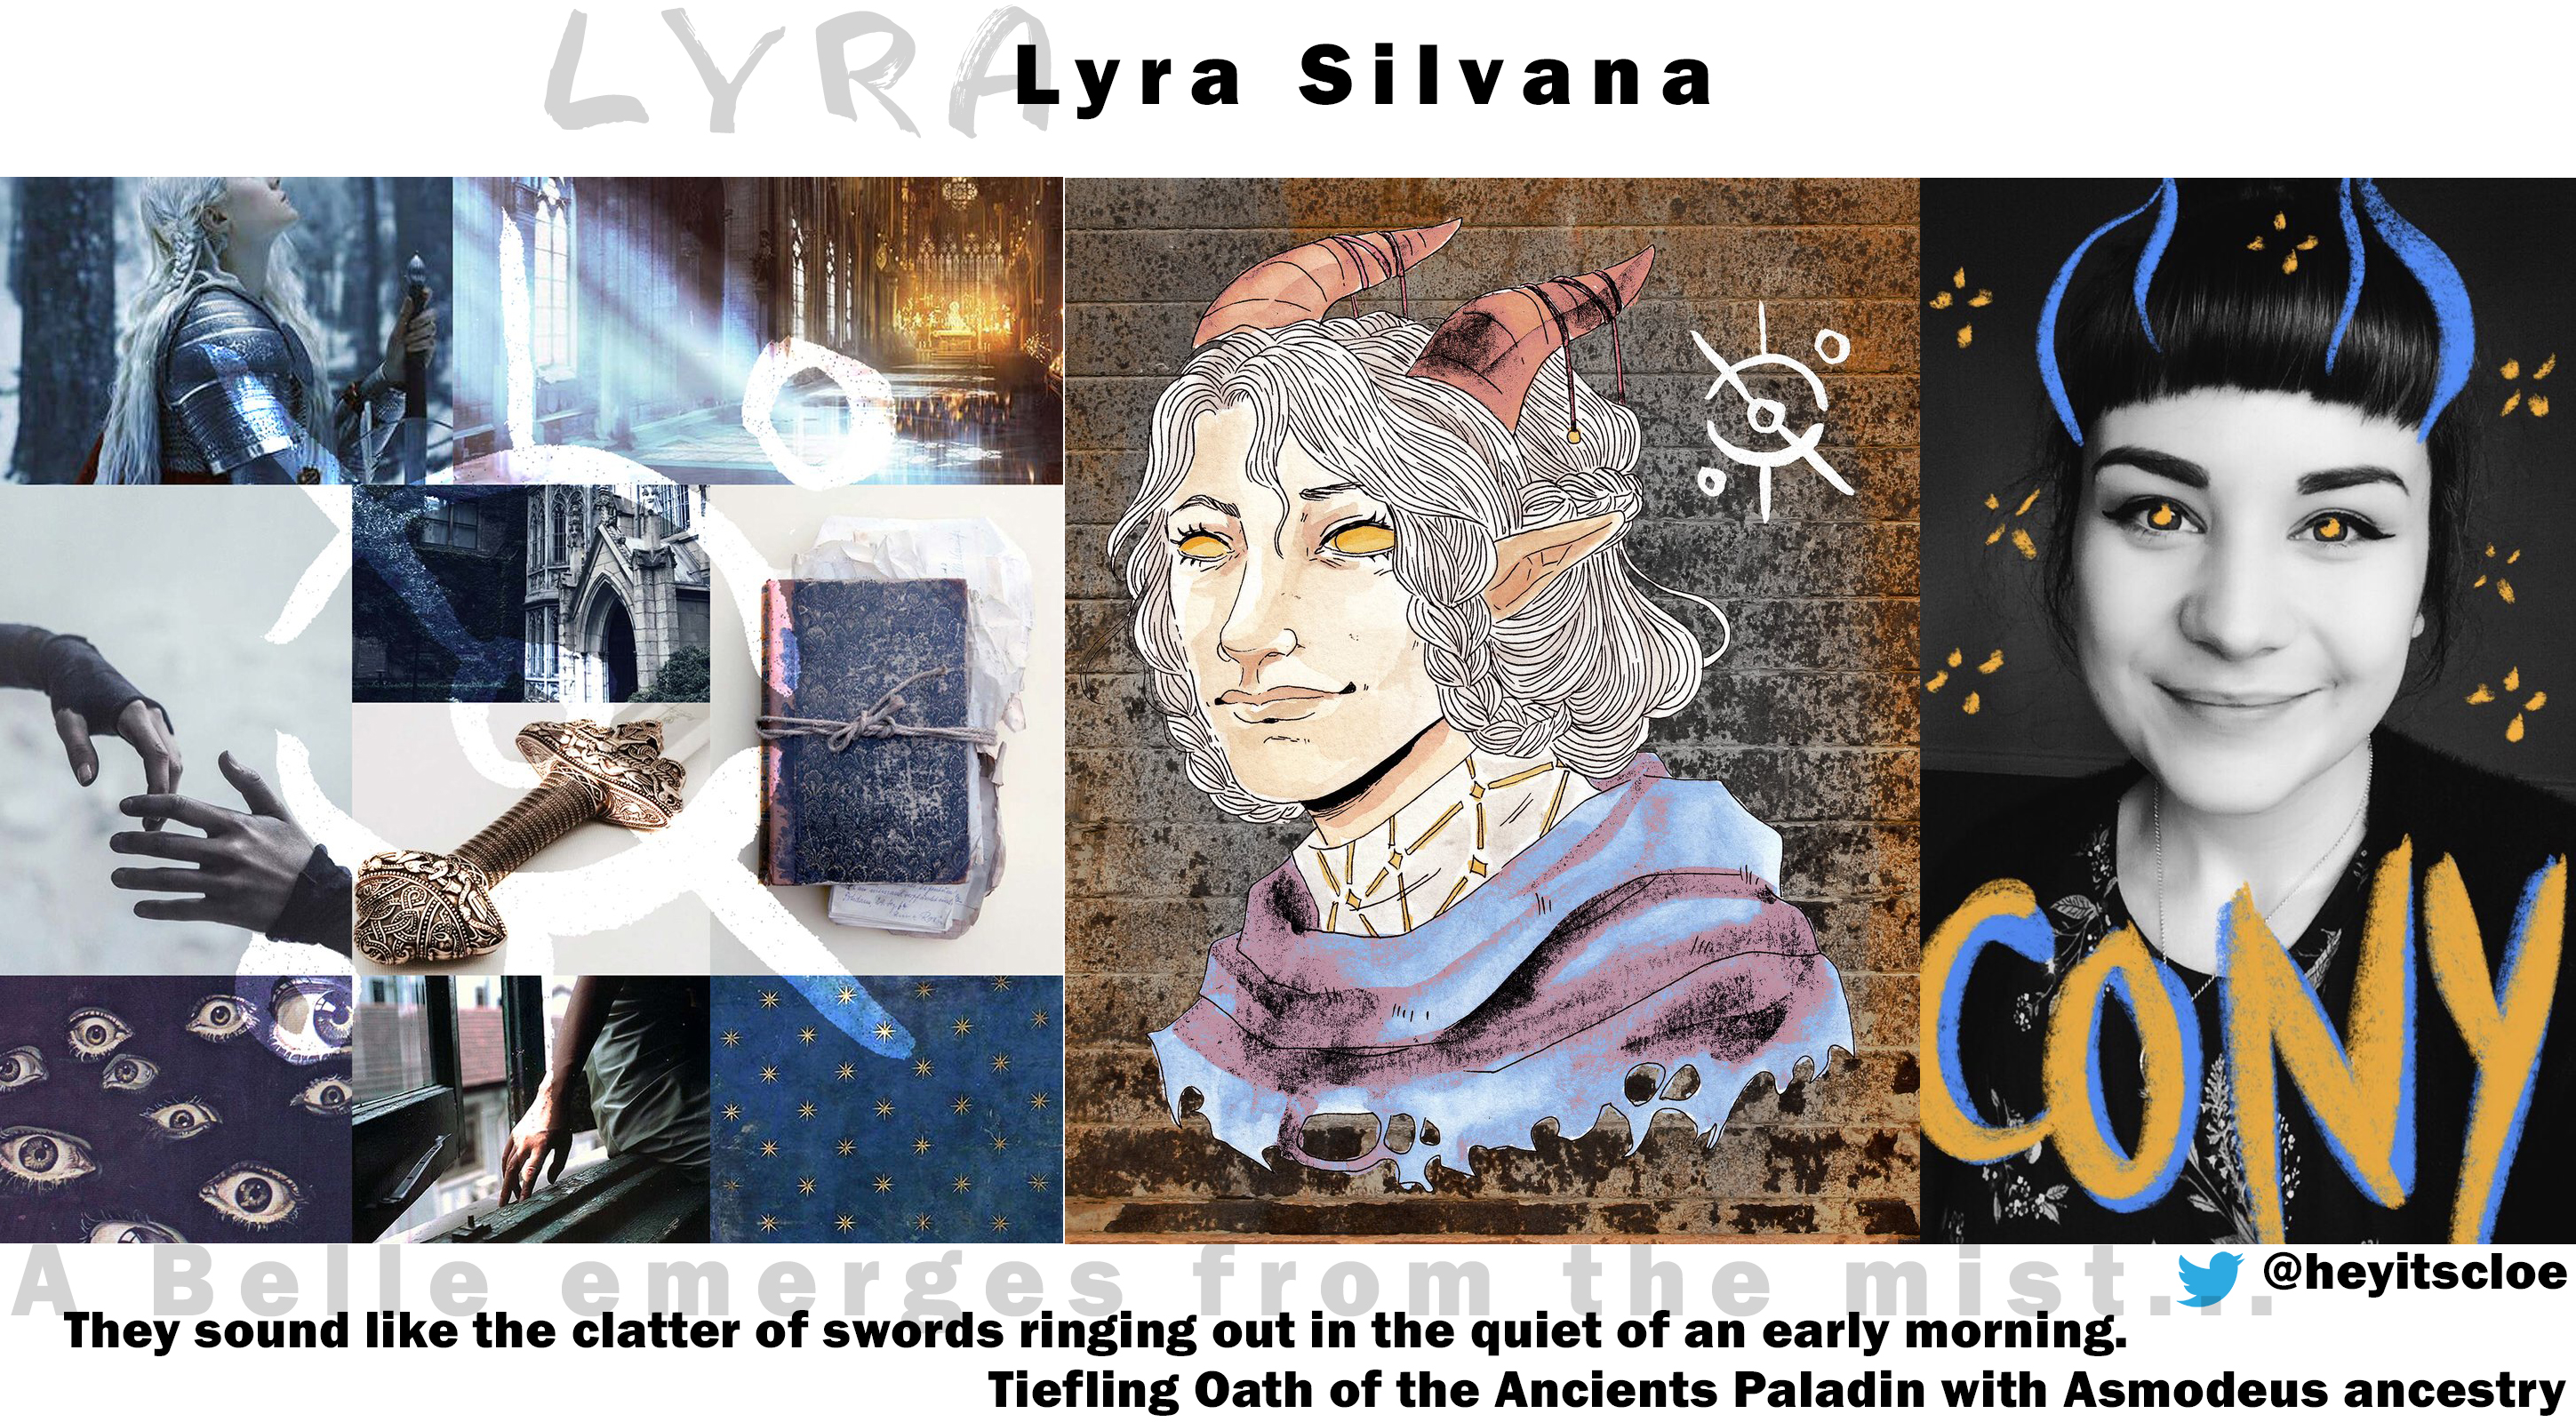 Lyra played by @heyitscloe